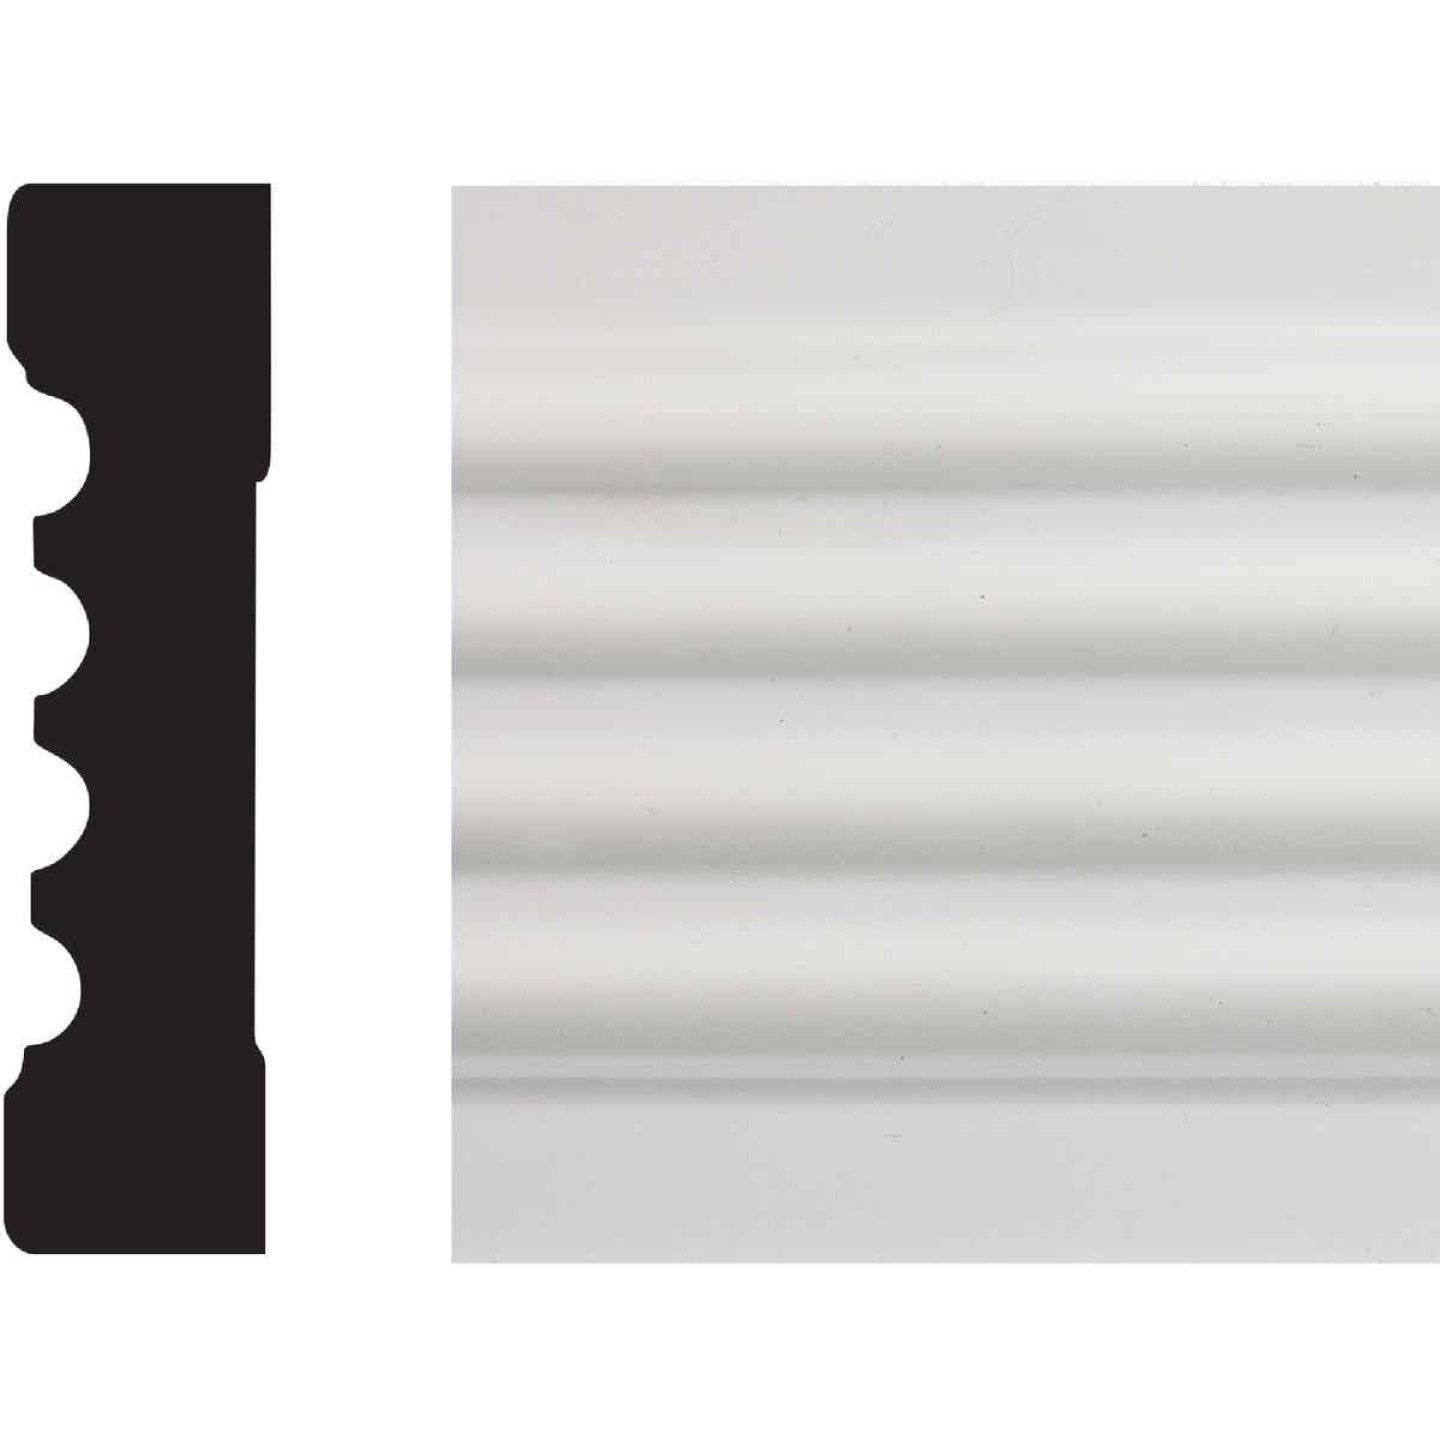 House of Fara 3/4 In. W. x 3 In. H. x 8 Ft. L. White MDF Fluted Casing Molding Image 1